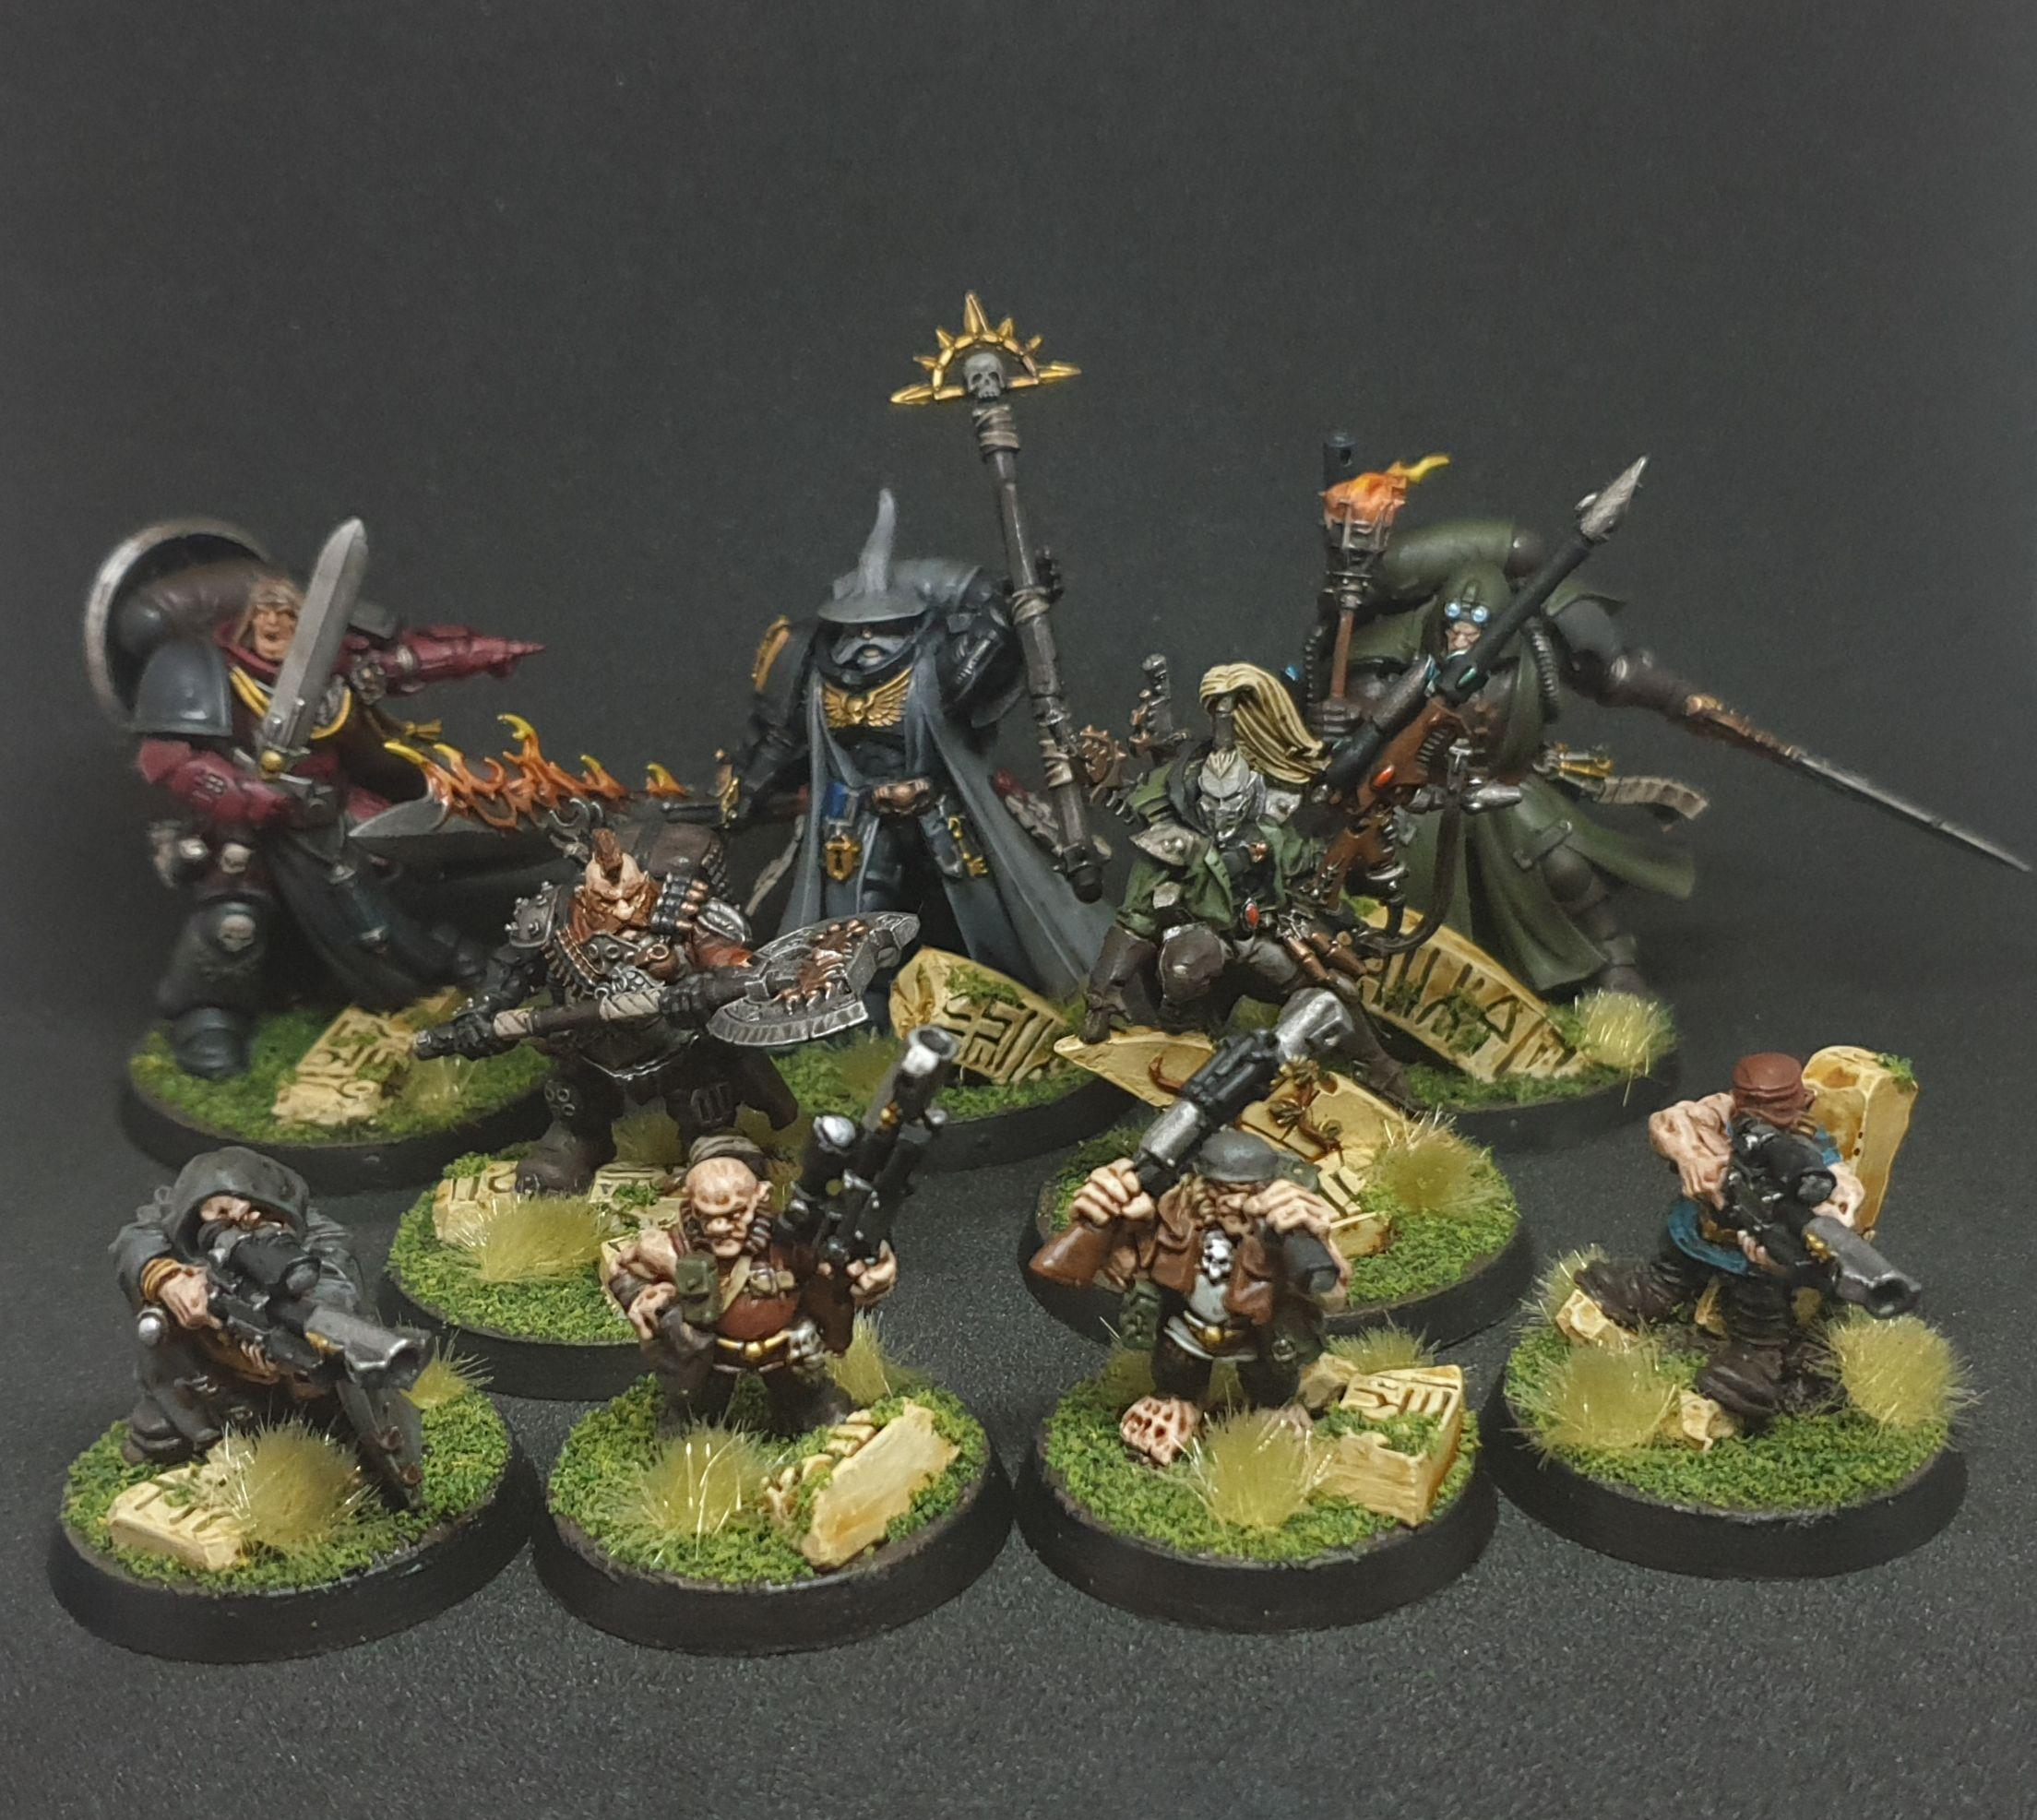 Lord Of The Rings, Ratling, Space Marines, Warhammer 40,000